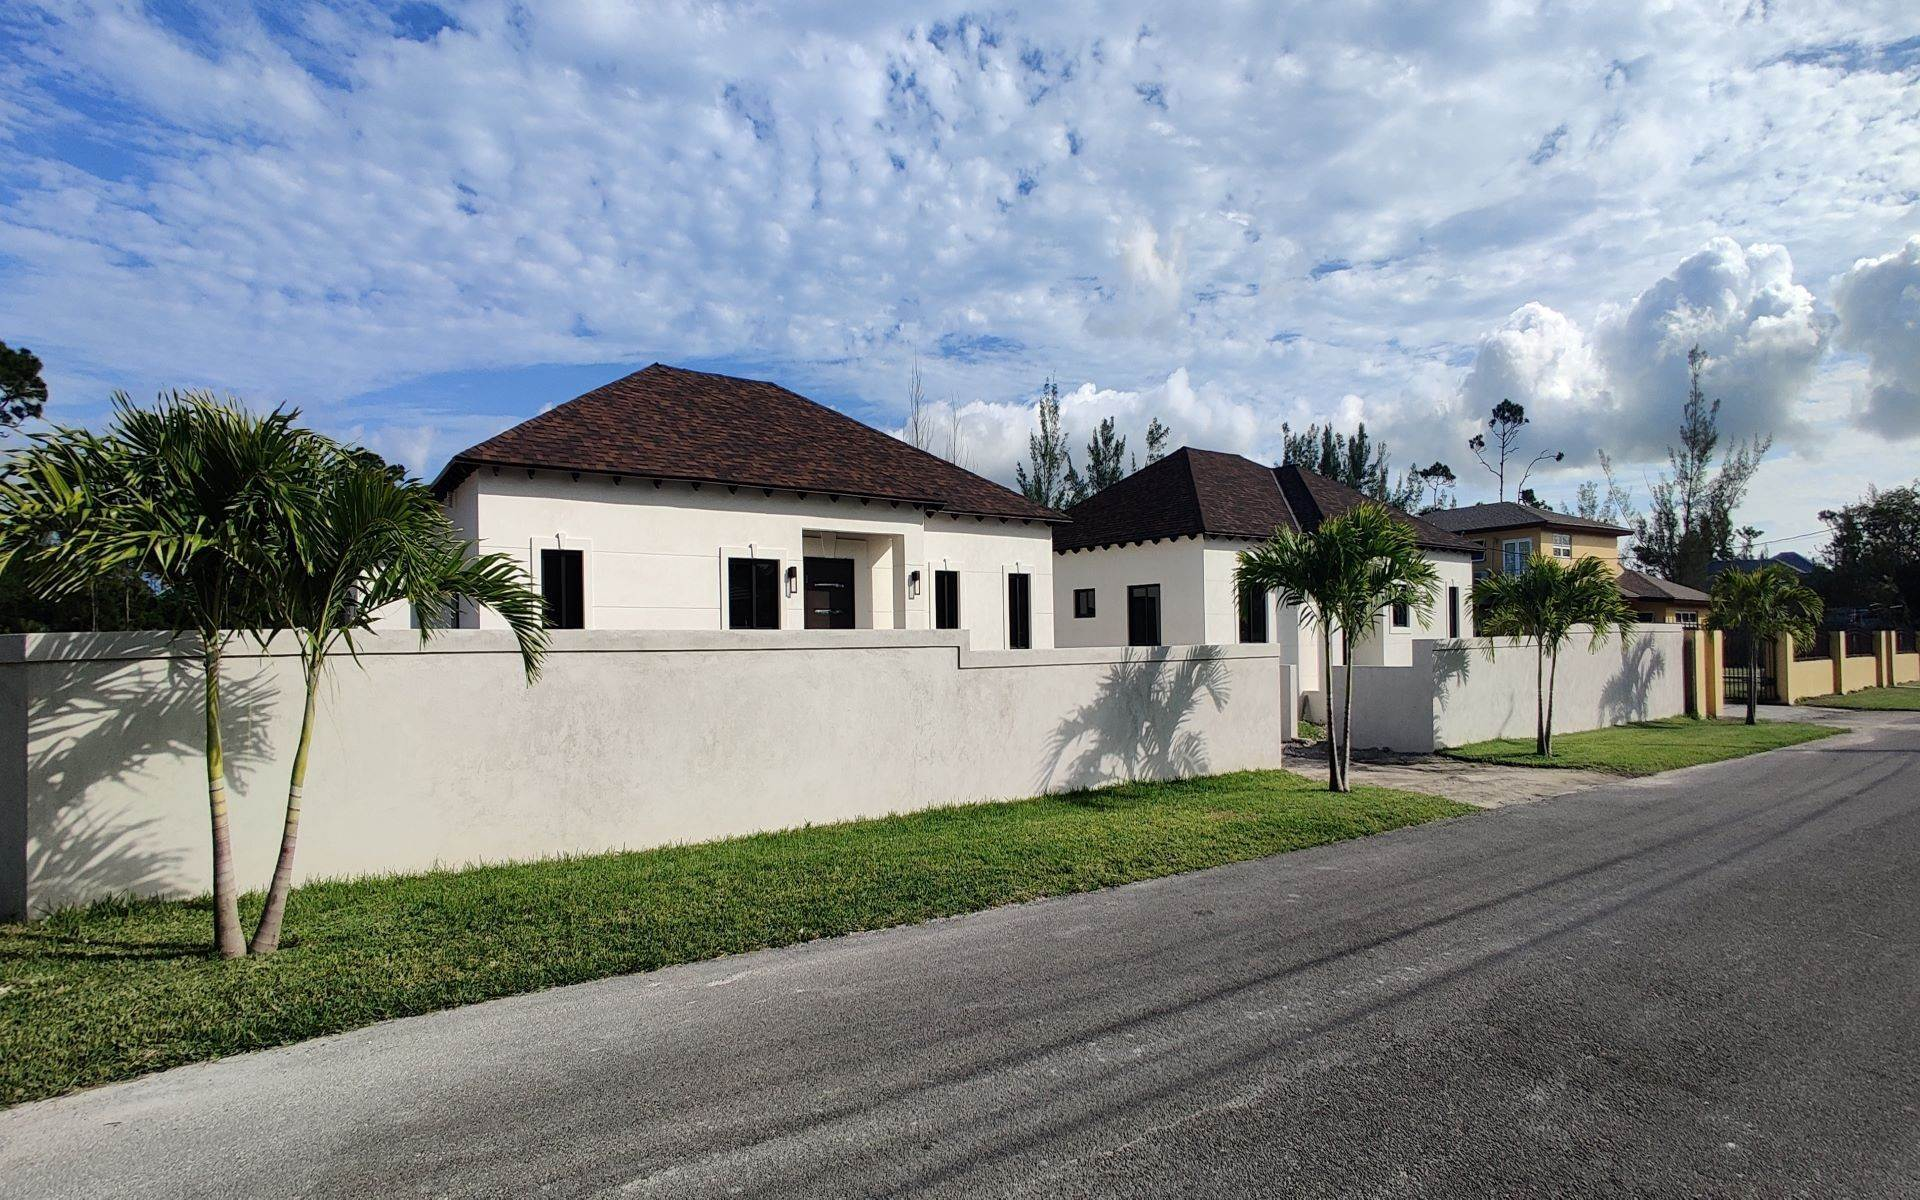 Single Family Homes for Sale at Treviso Villas at Tusculum Estates - MLS 42021 Tusculum, Nassau And Paradise Island, Bahamas